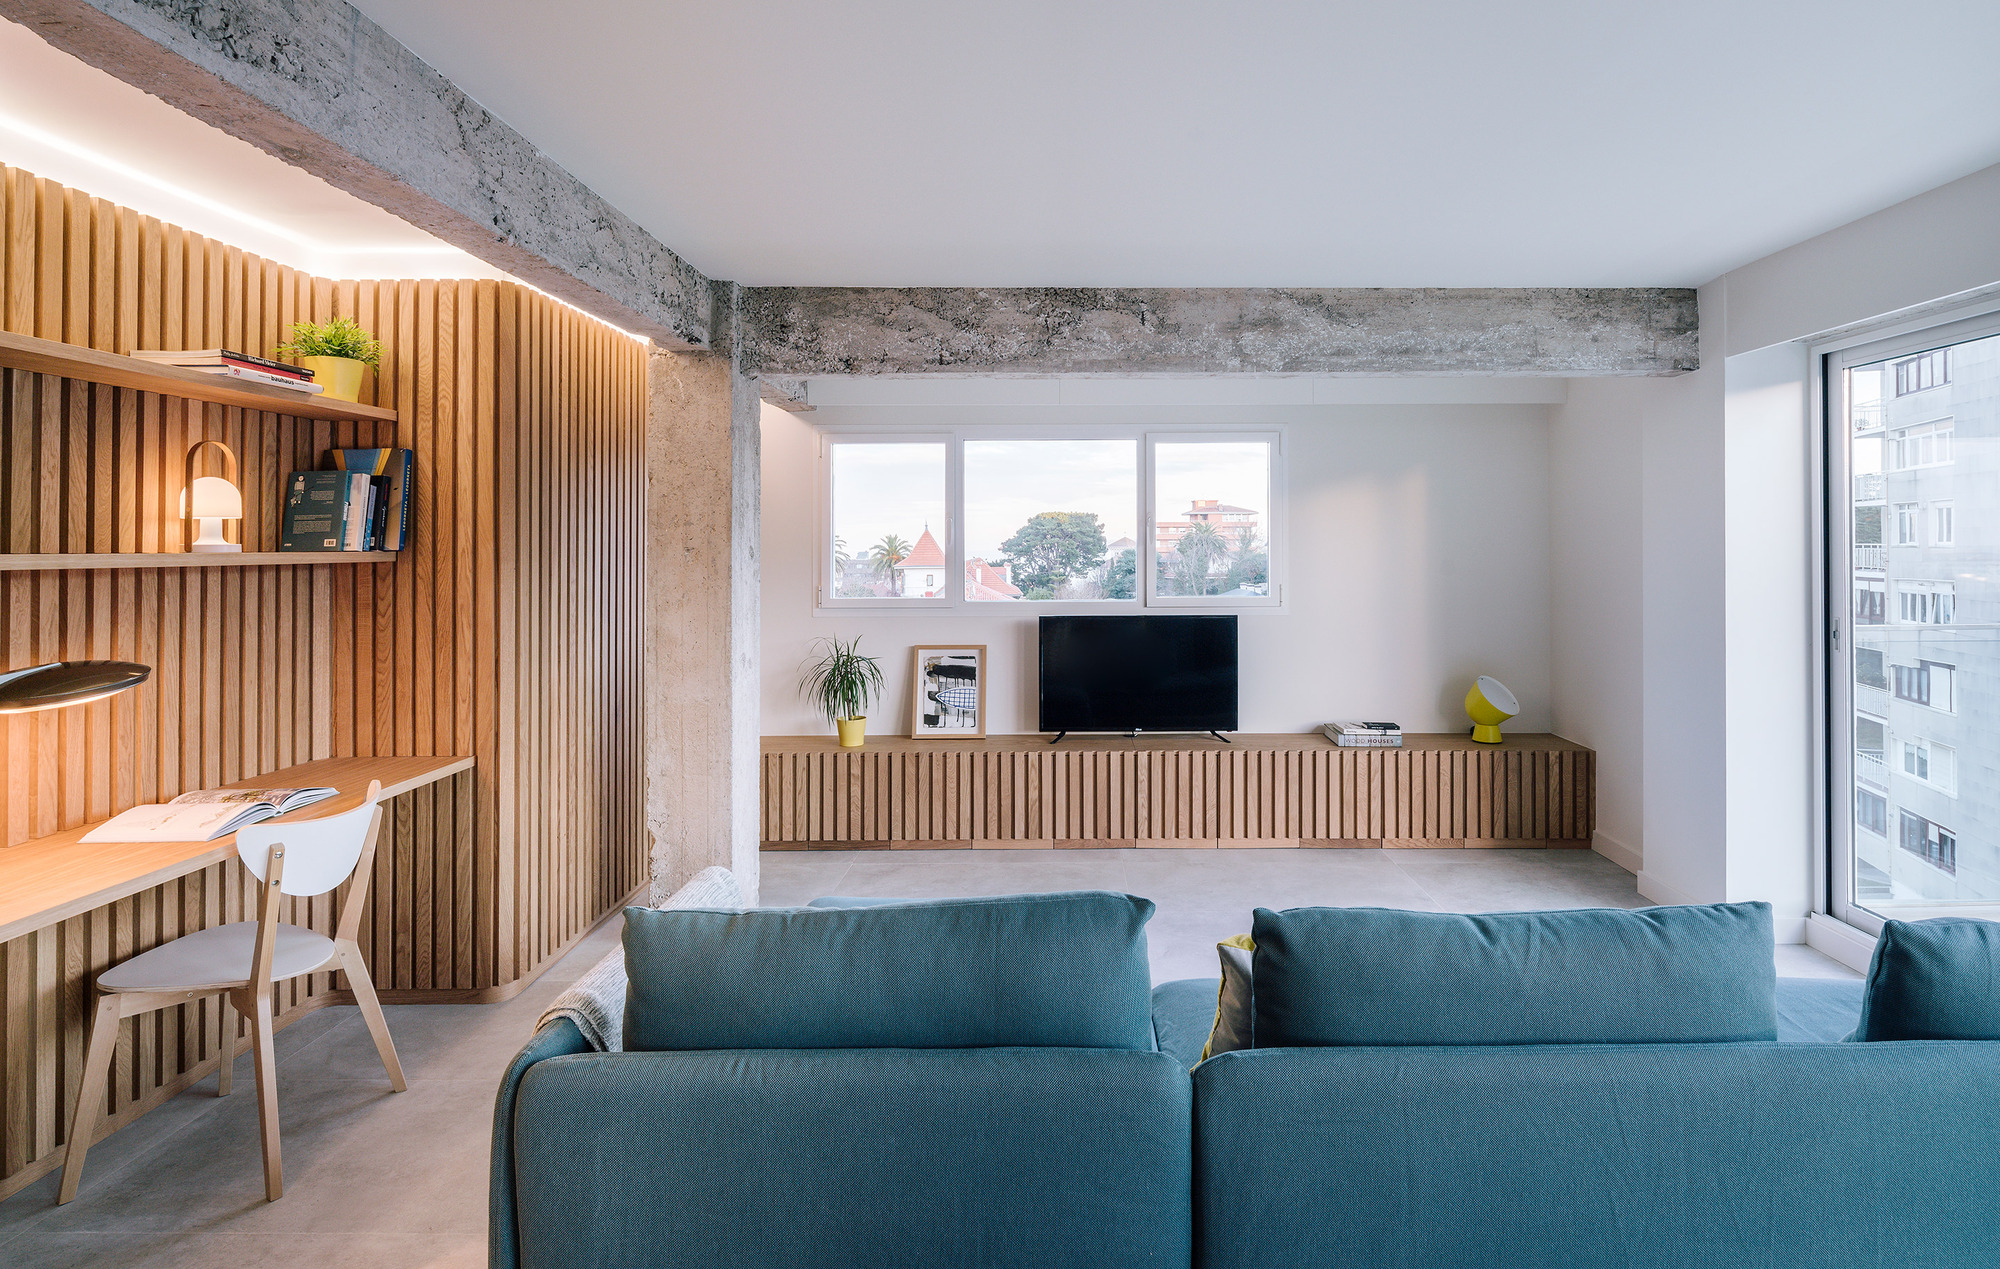 Gorgeous new interior of apartment in Santander, Spain with a concrete and wood interior